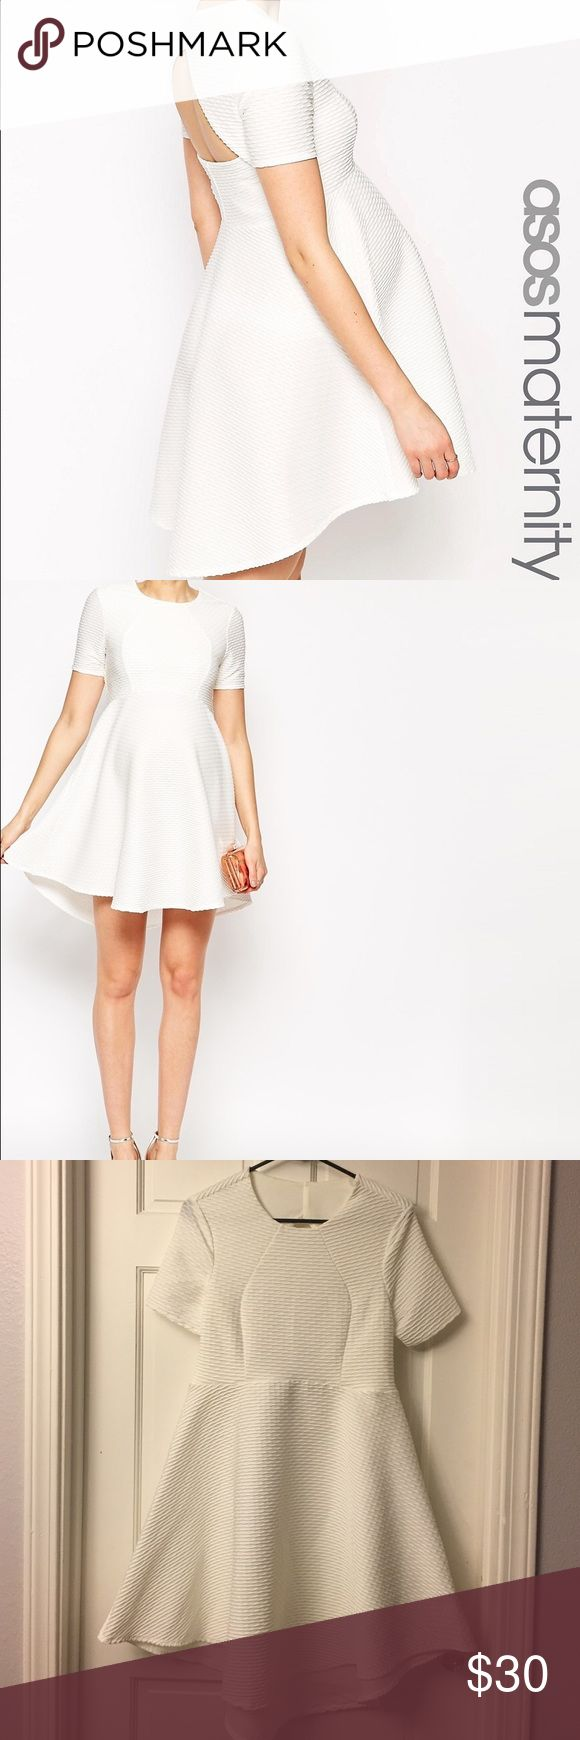 Asos maternity skater dress White maternity dress, beautiful stretch textured pattern with open back, very flattering! Worn once. ASOS Maternity Dresses Backless